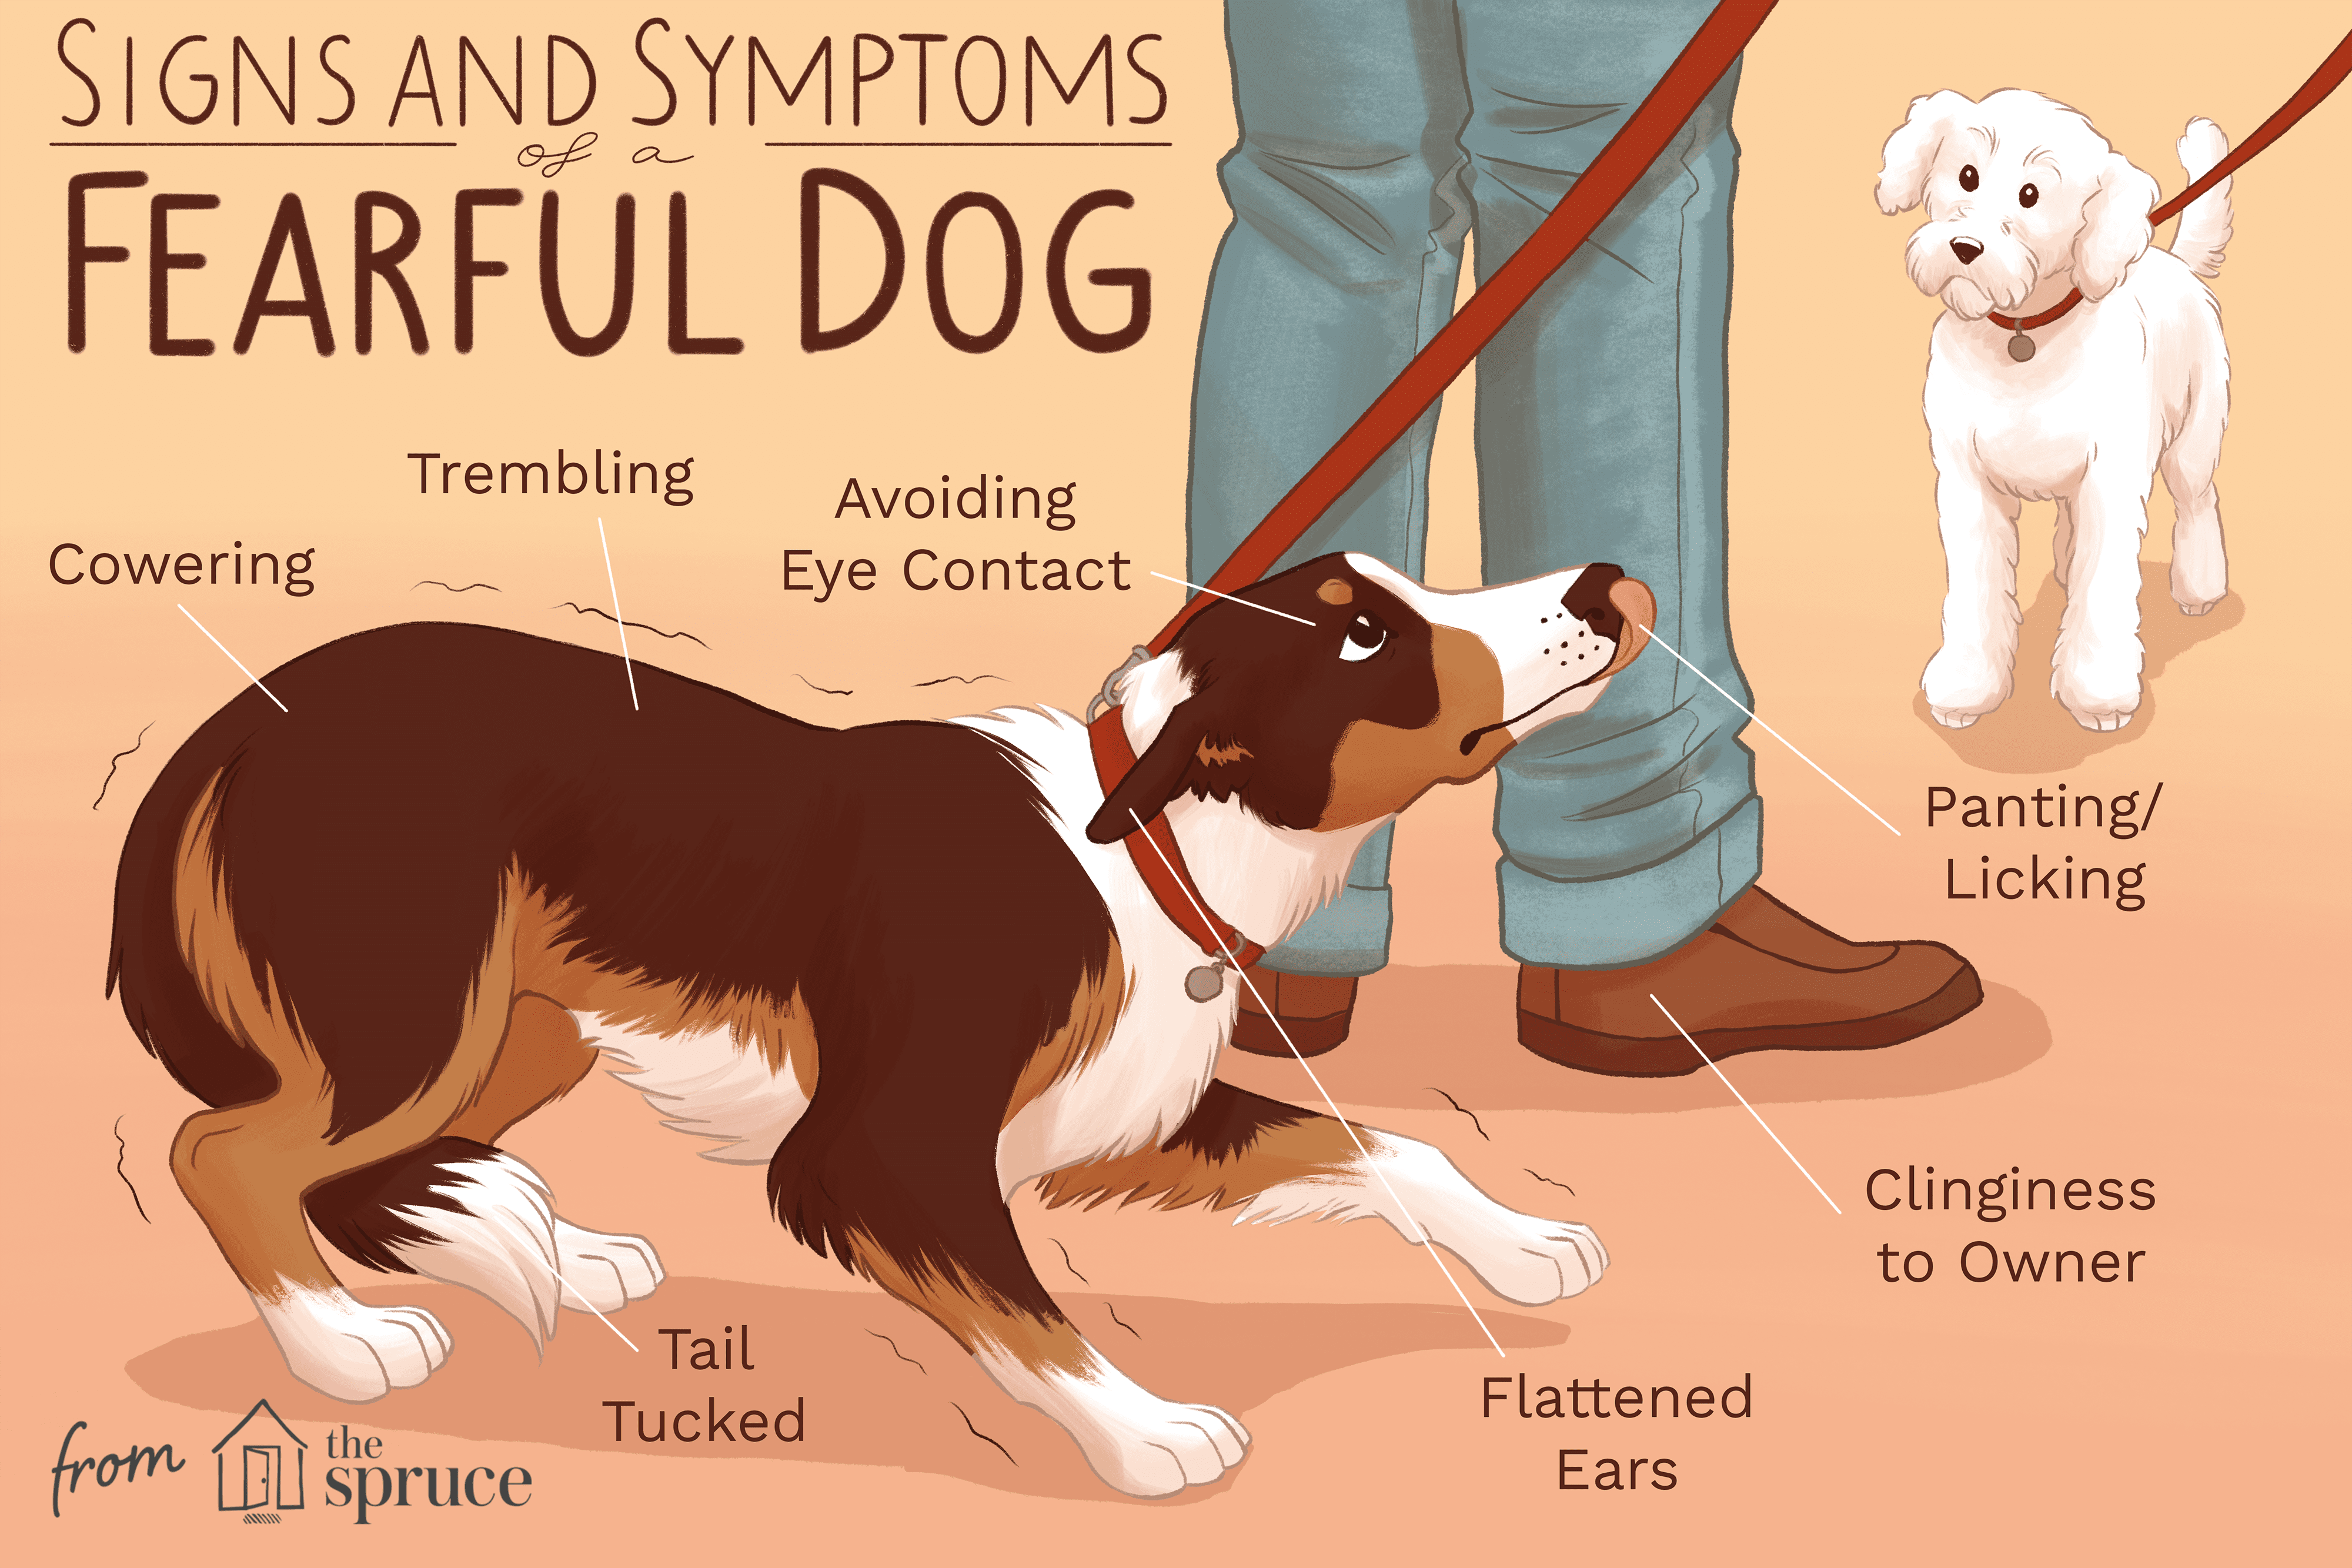 signs and symptoms of a tearful dog illustration